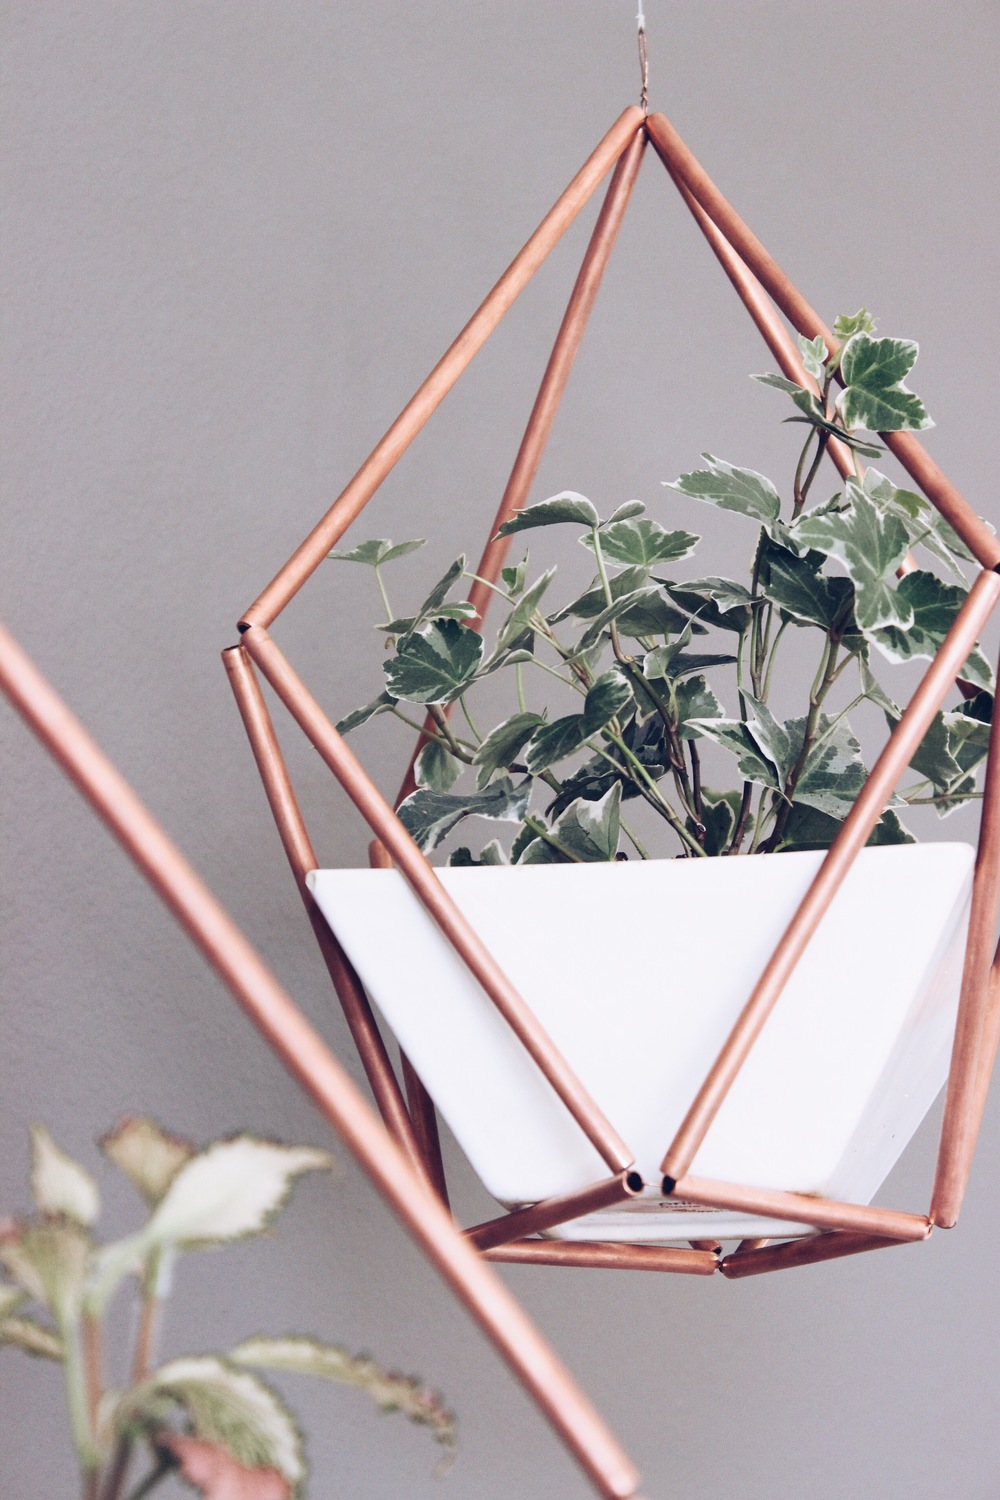 DIY Copper Himmeli Hanging Planter | HelloLovelyLiving.com